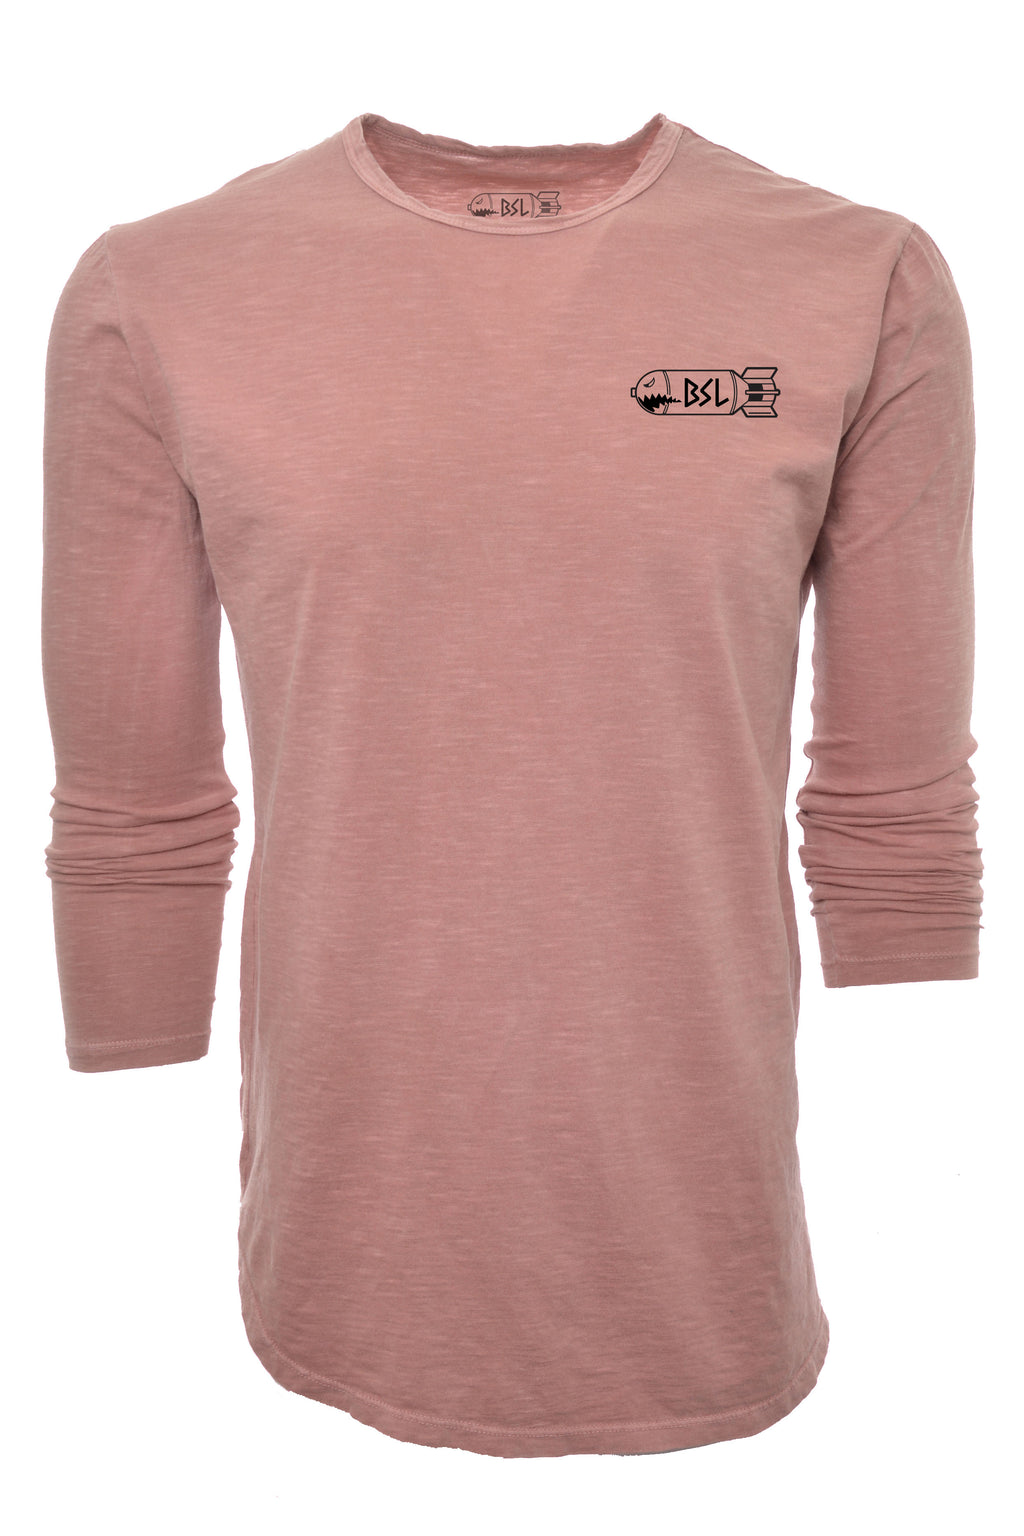 BSL Elongated 3/4 Sleeve Tee - Salmon Acid Wash